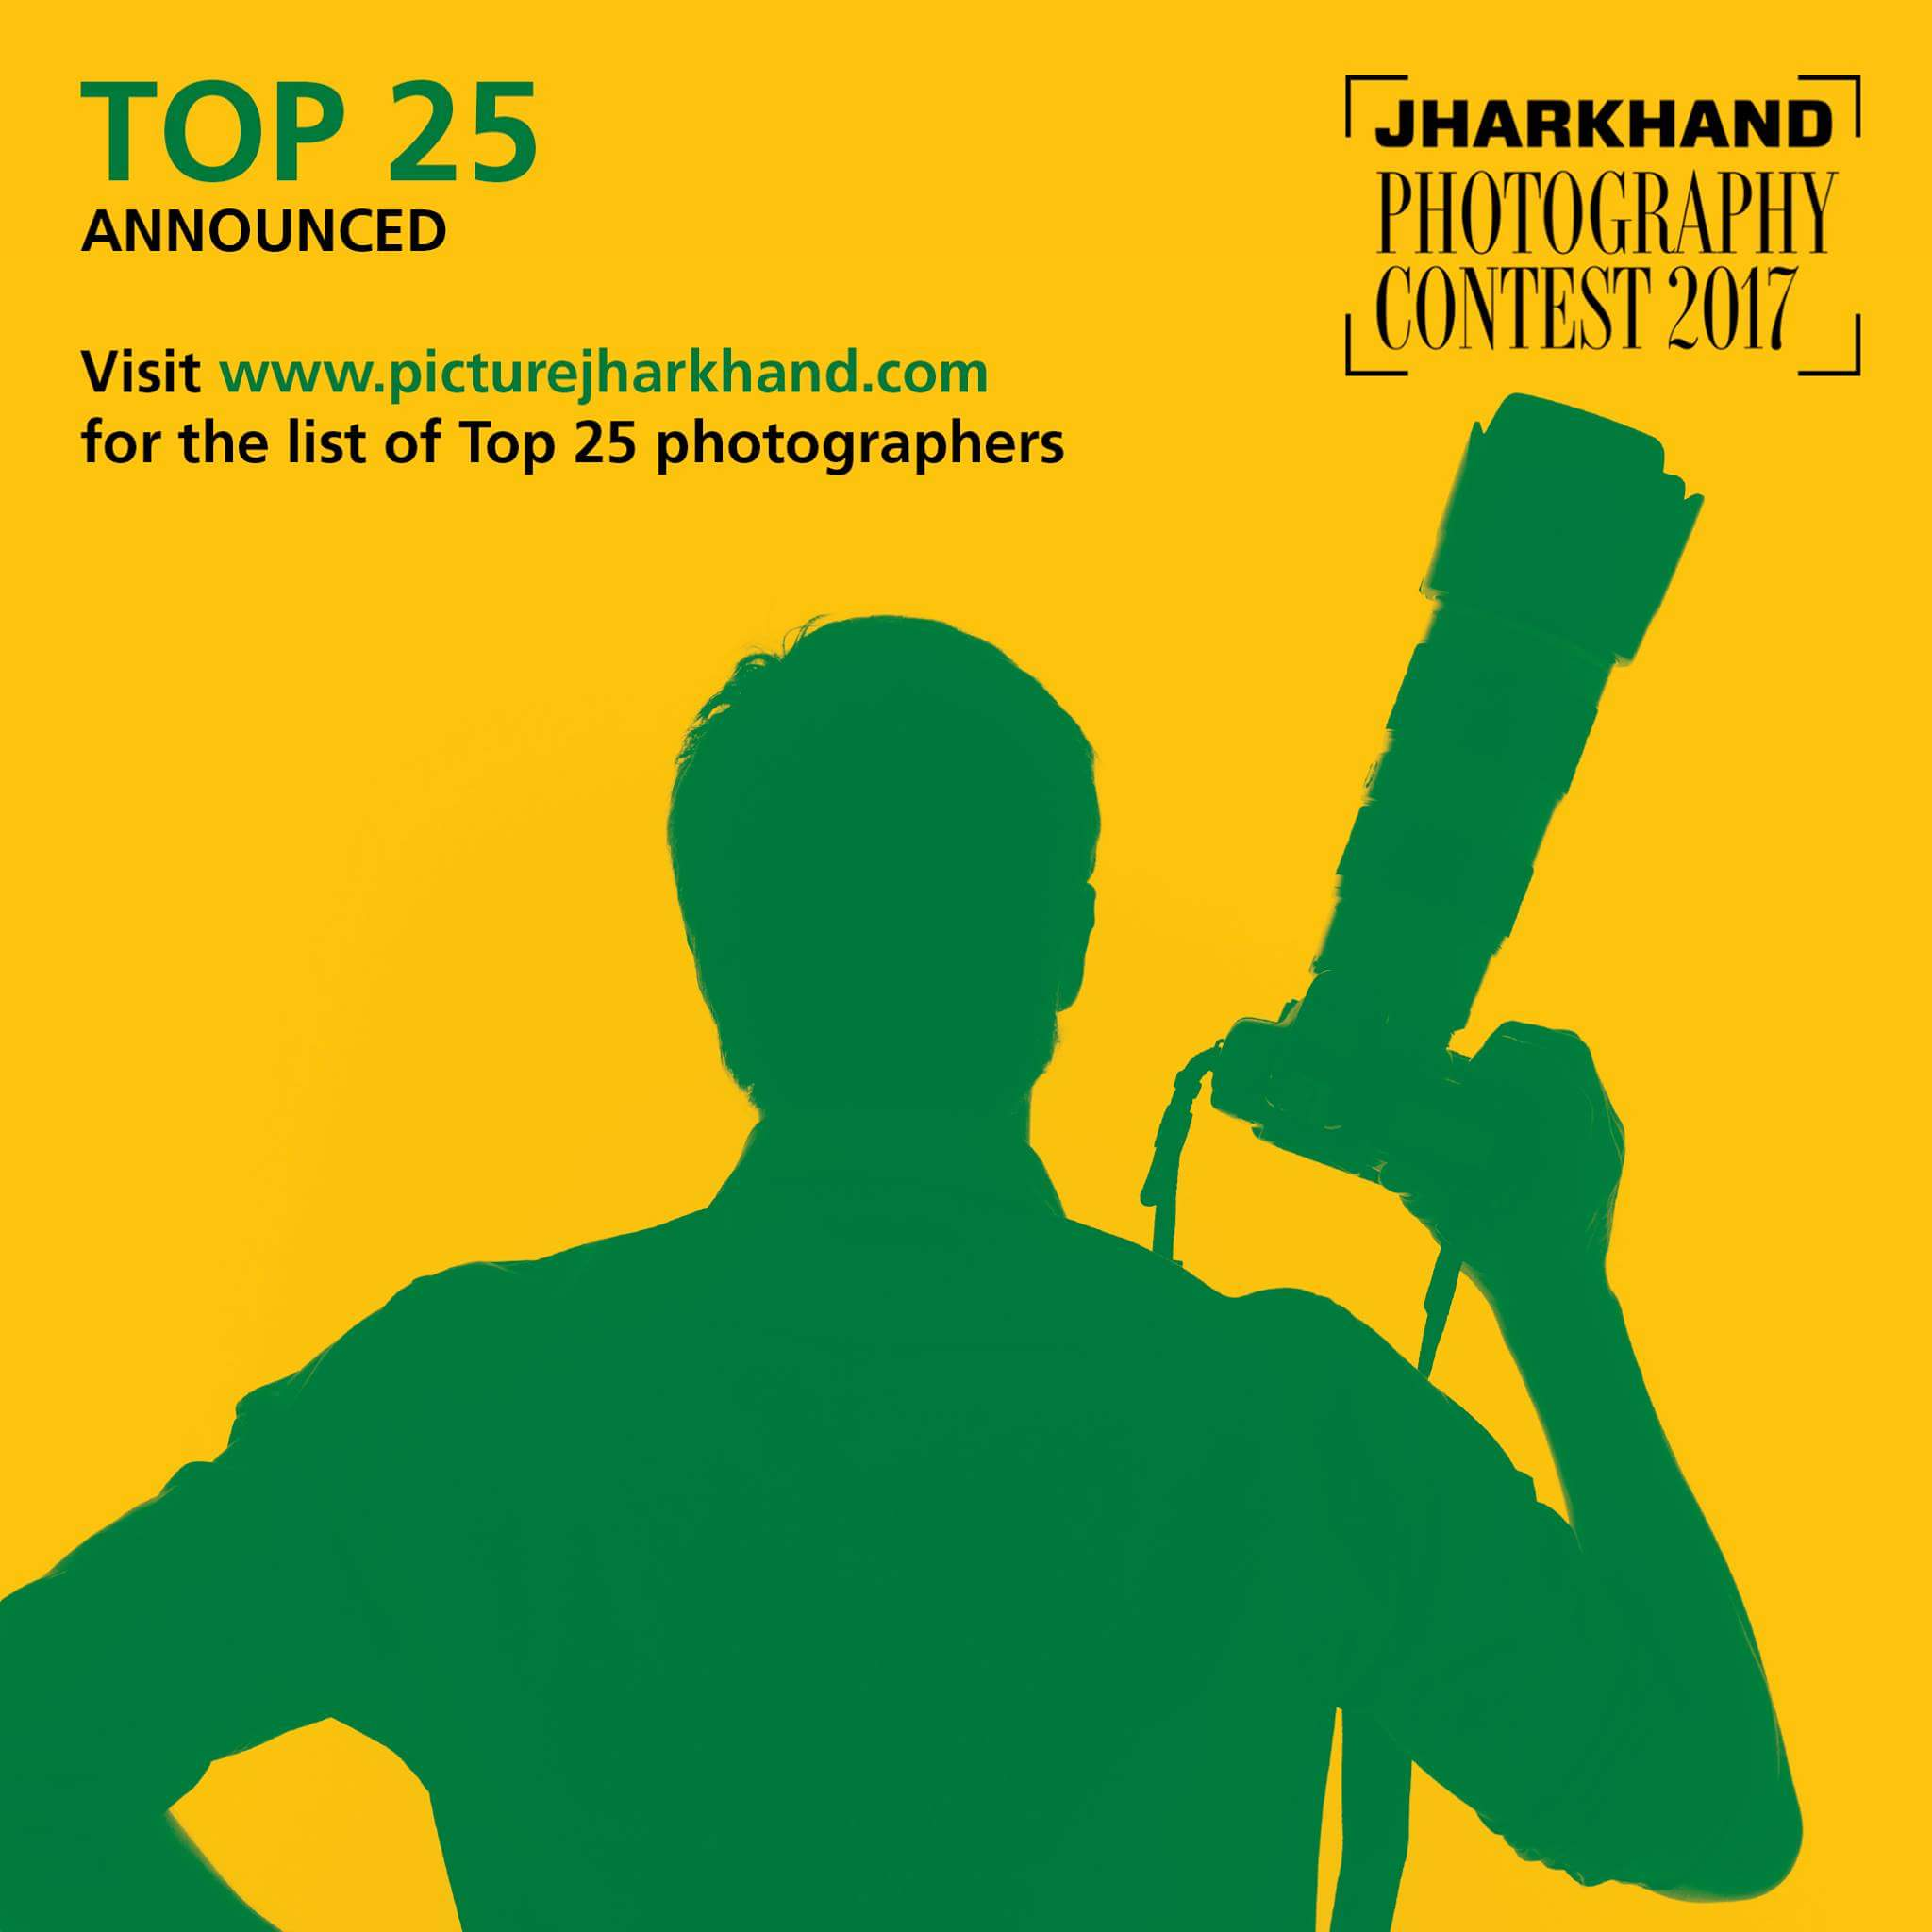 Jharkhand Photography Contest 2017 :: The Top 25 Photographers.